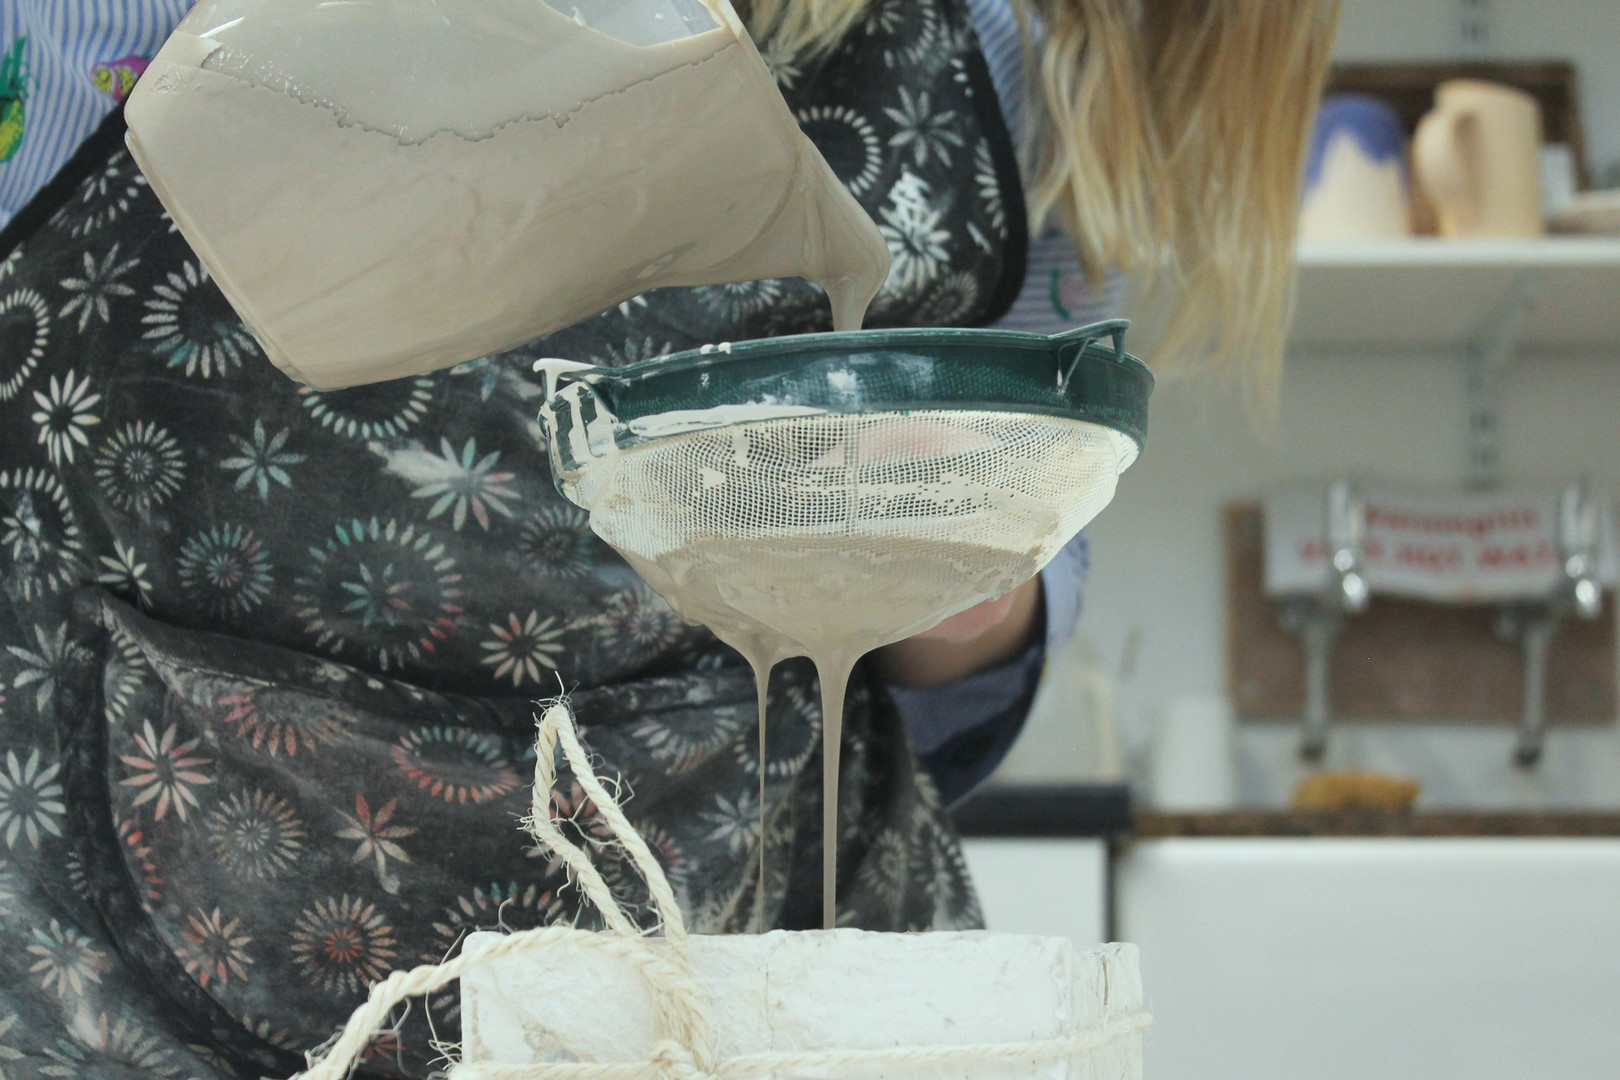 Pouring slip into the plaster mould to create casts.